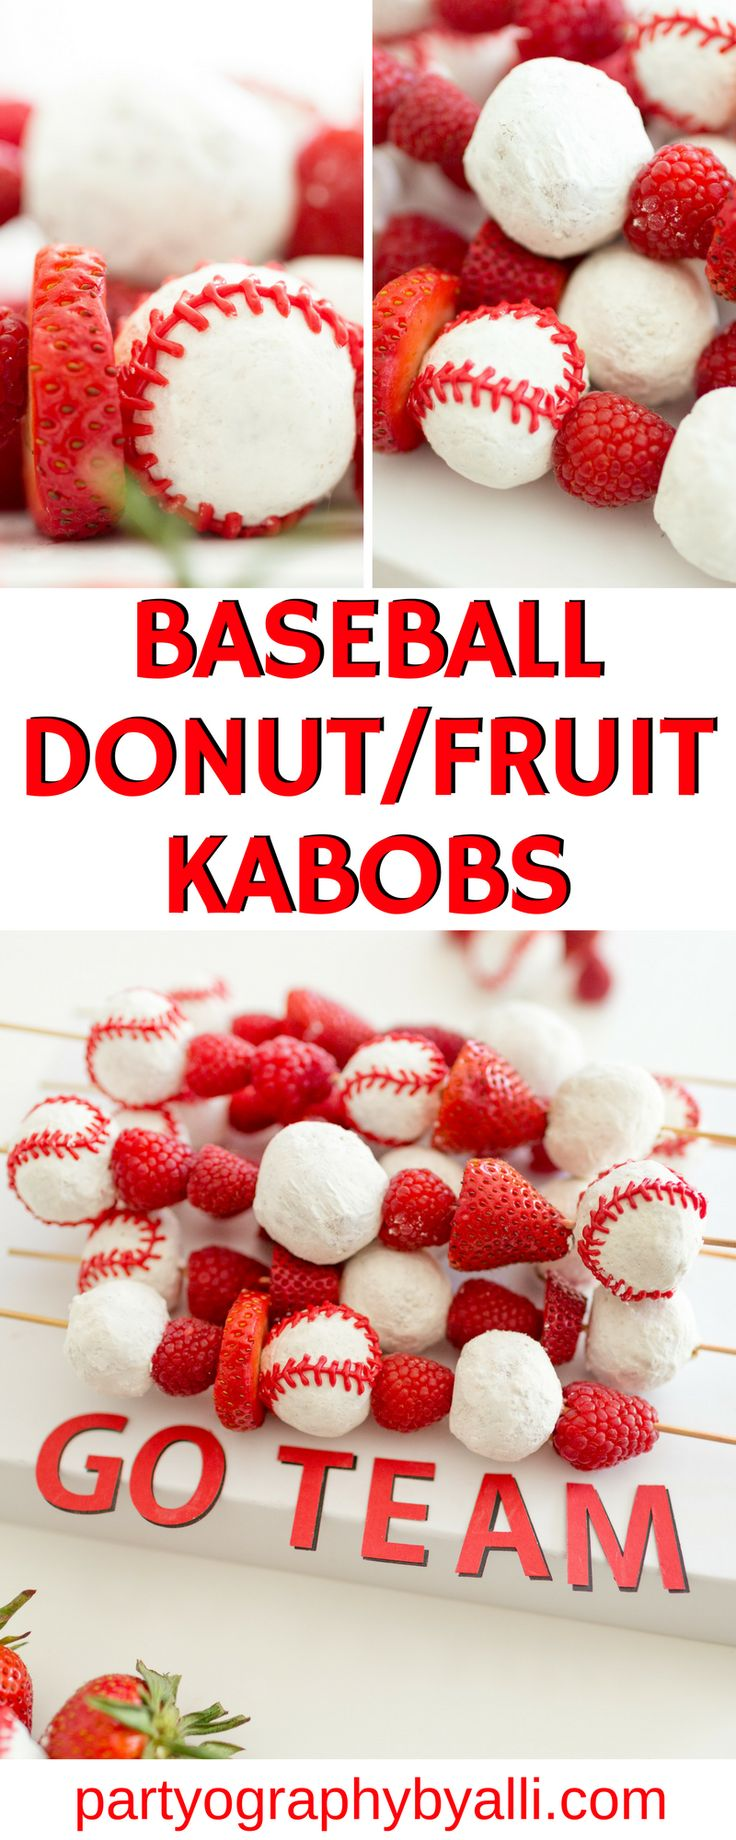 Baseball Donut & Fruit Kabobs, Baseball Party Food, Team Snack Ideas, Baseball birthday party ideas #baseballteamsnack #baseballparty